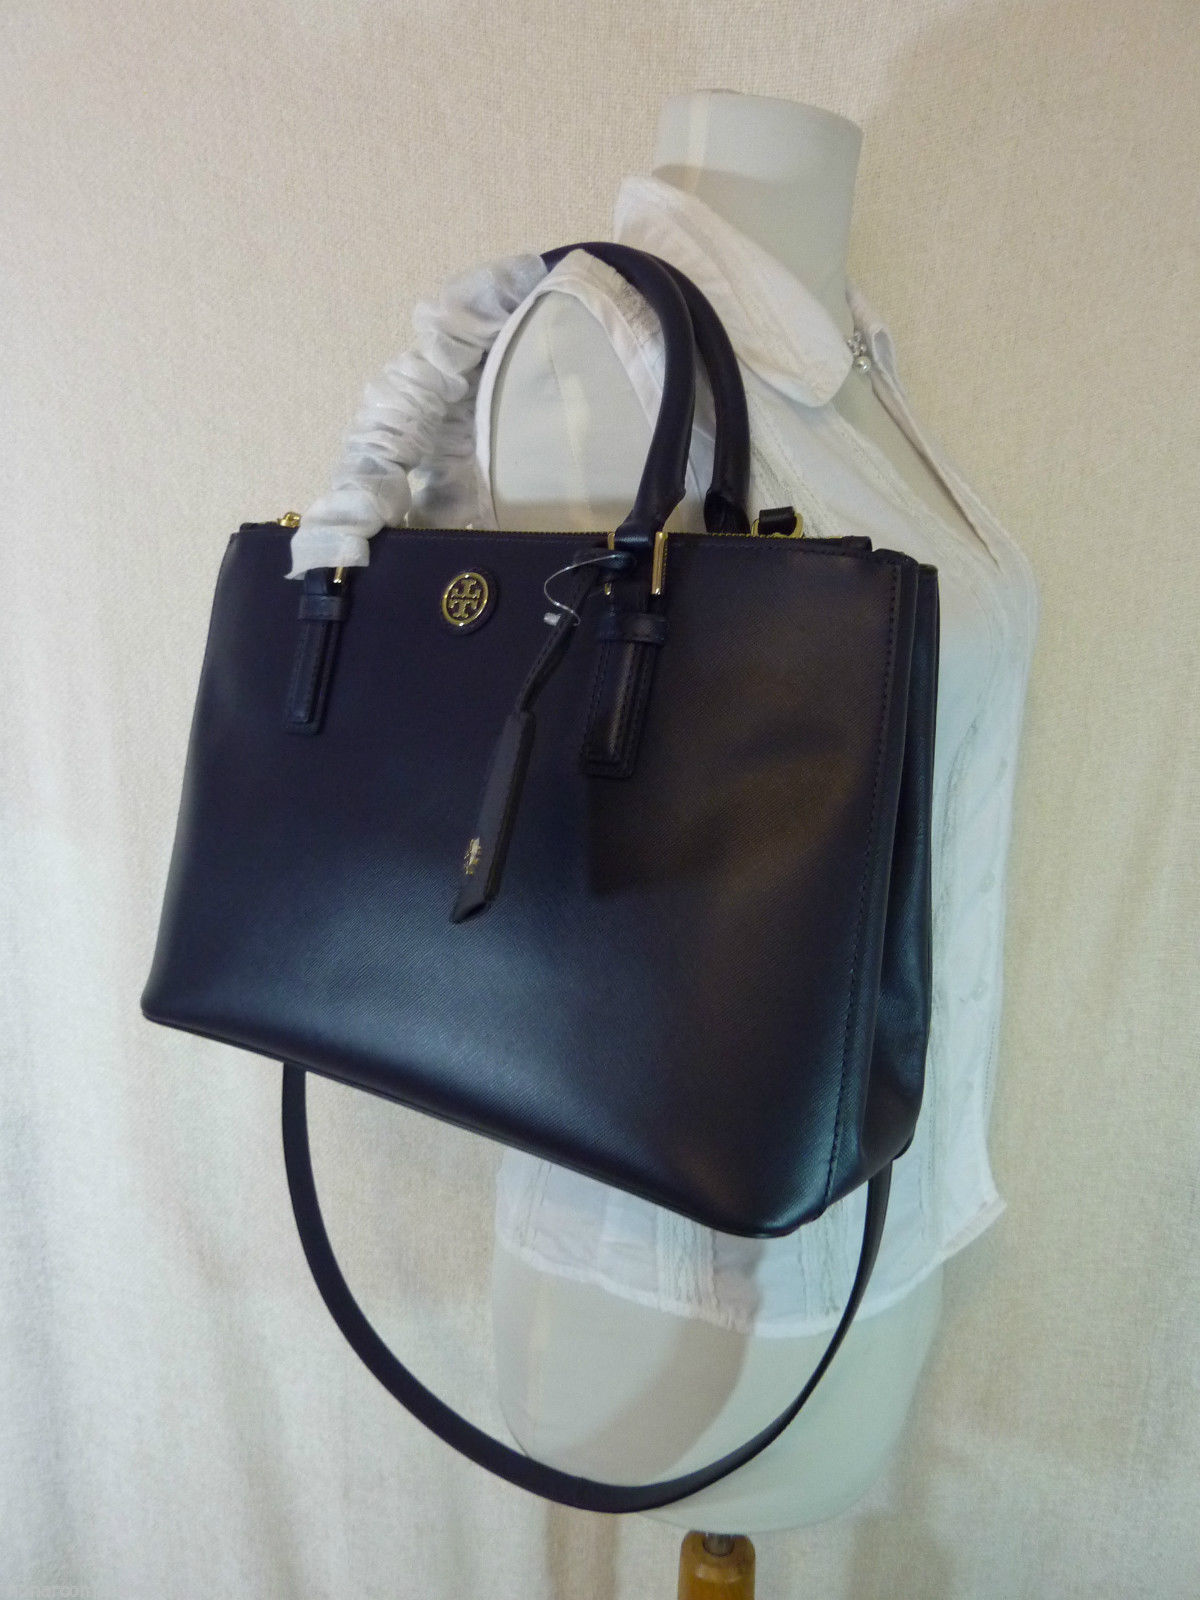 Tory Burch Navy Blue Saffiano Leather Robinson Mini Double-Zip Tote $495 image 2